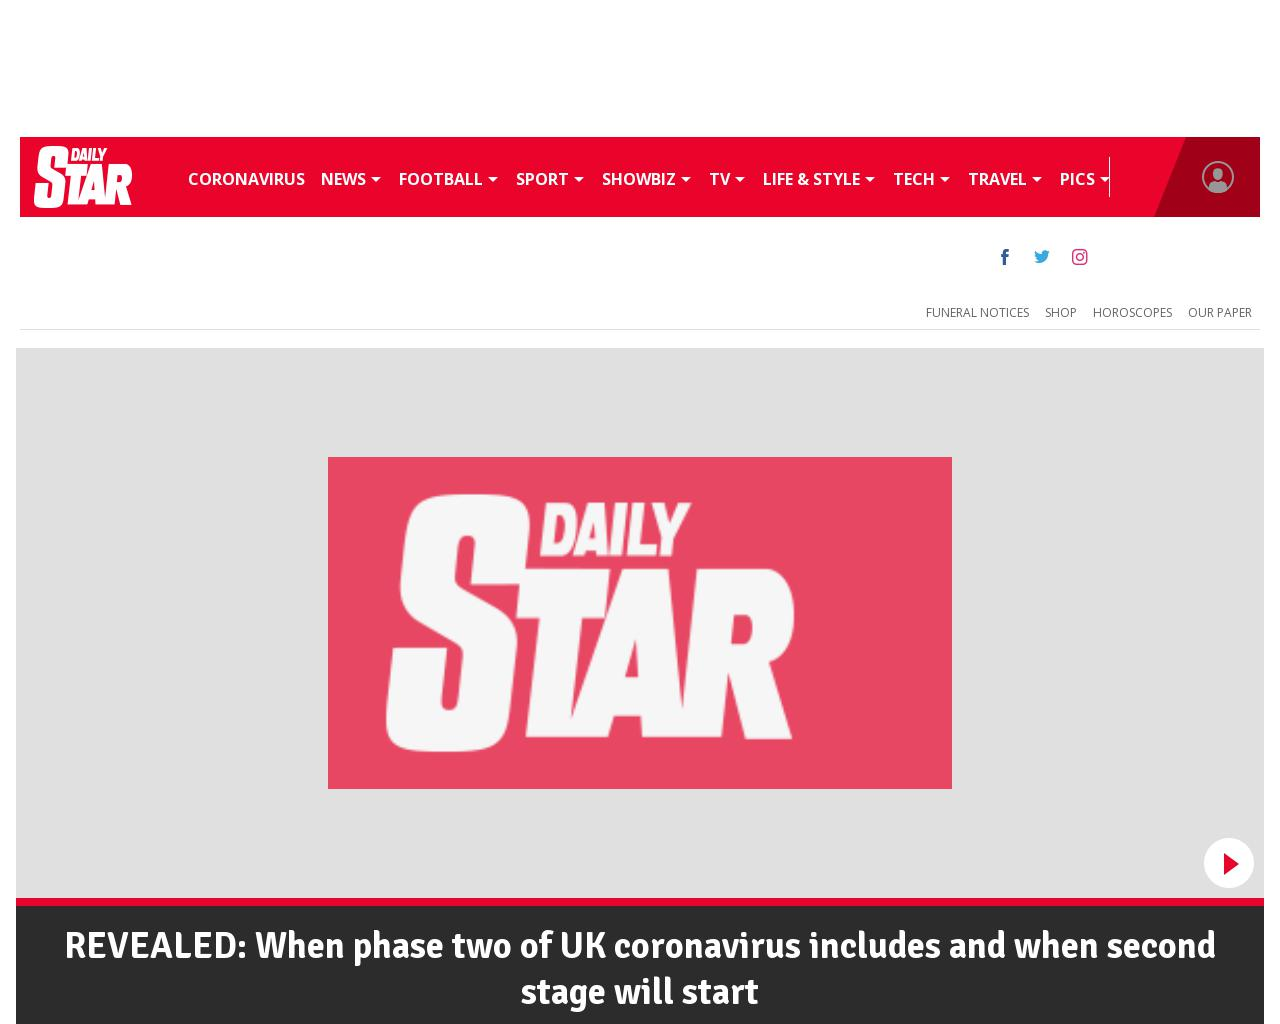 dailystar.co.uk